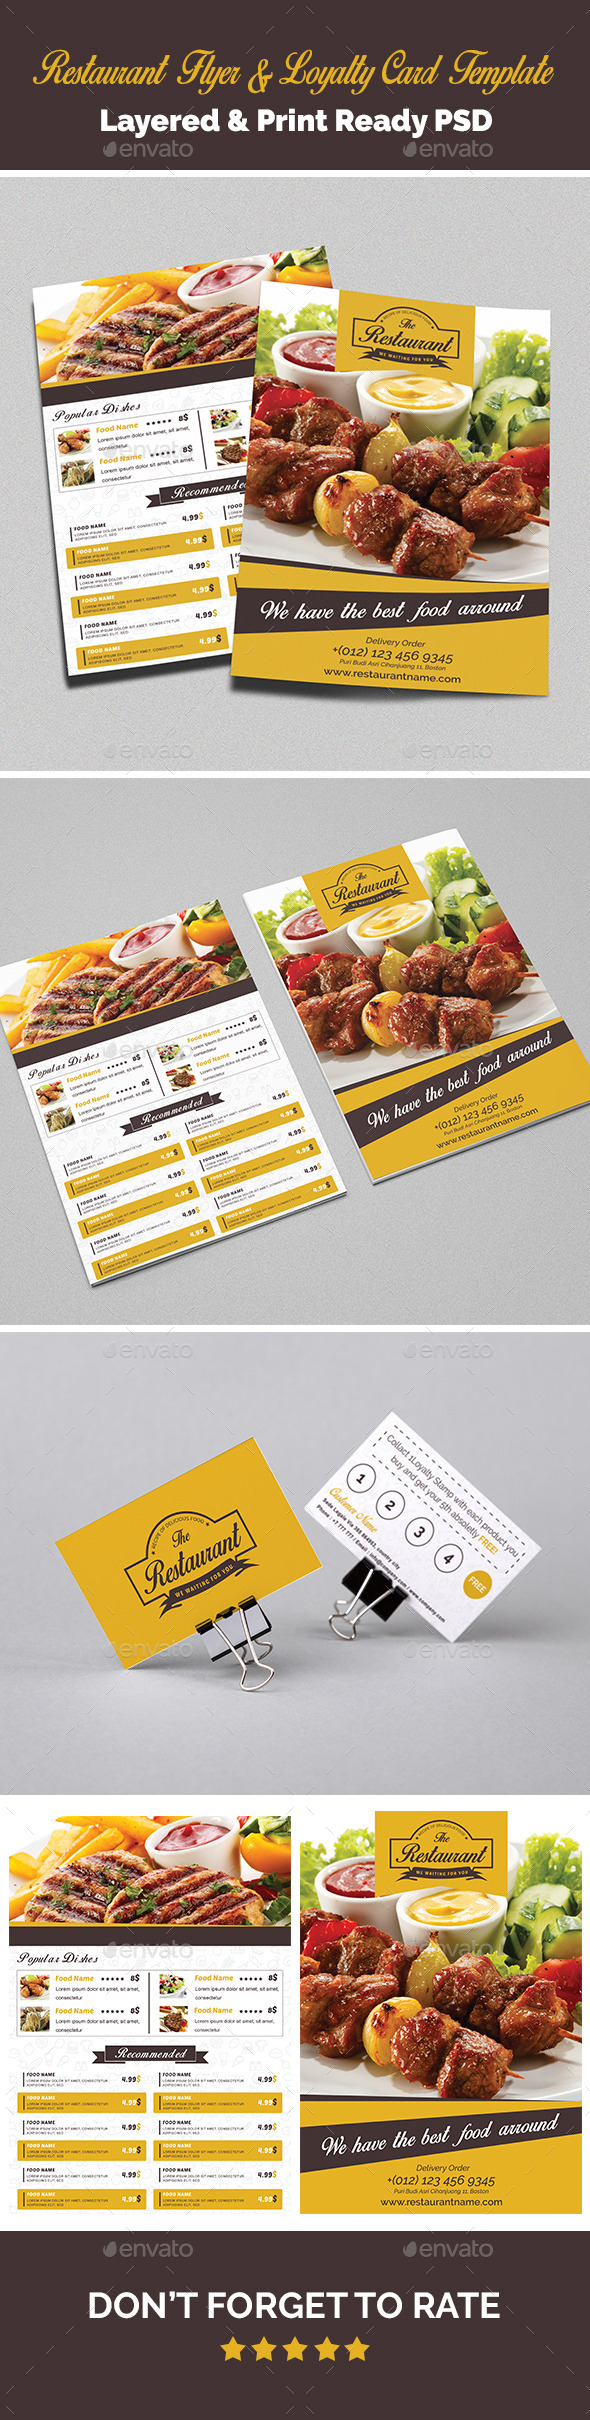 Restaurant Flyer & Loyalty Card Template - Food Menus Print Templates